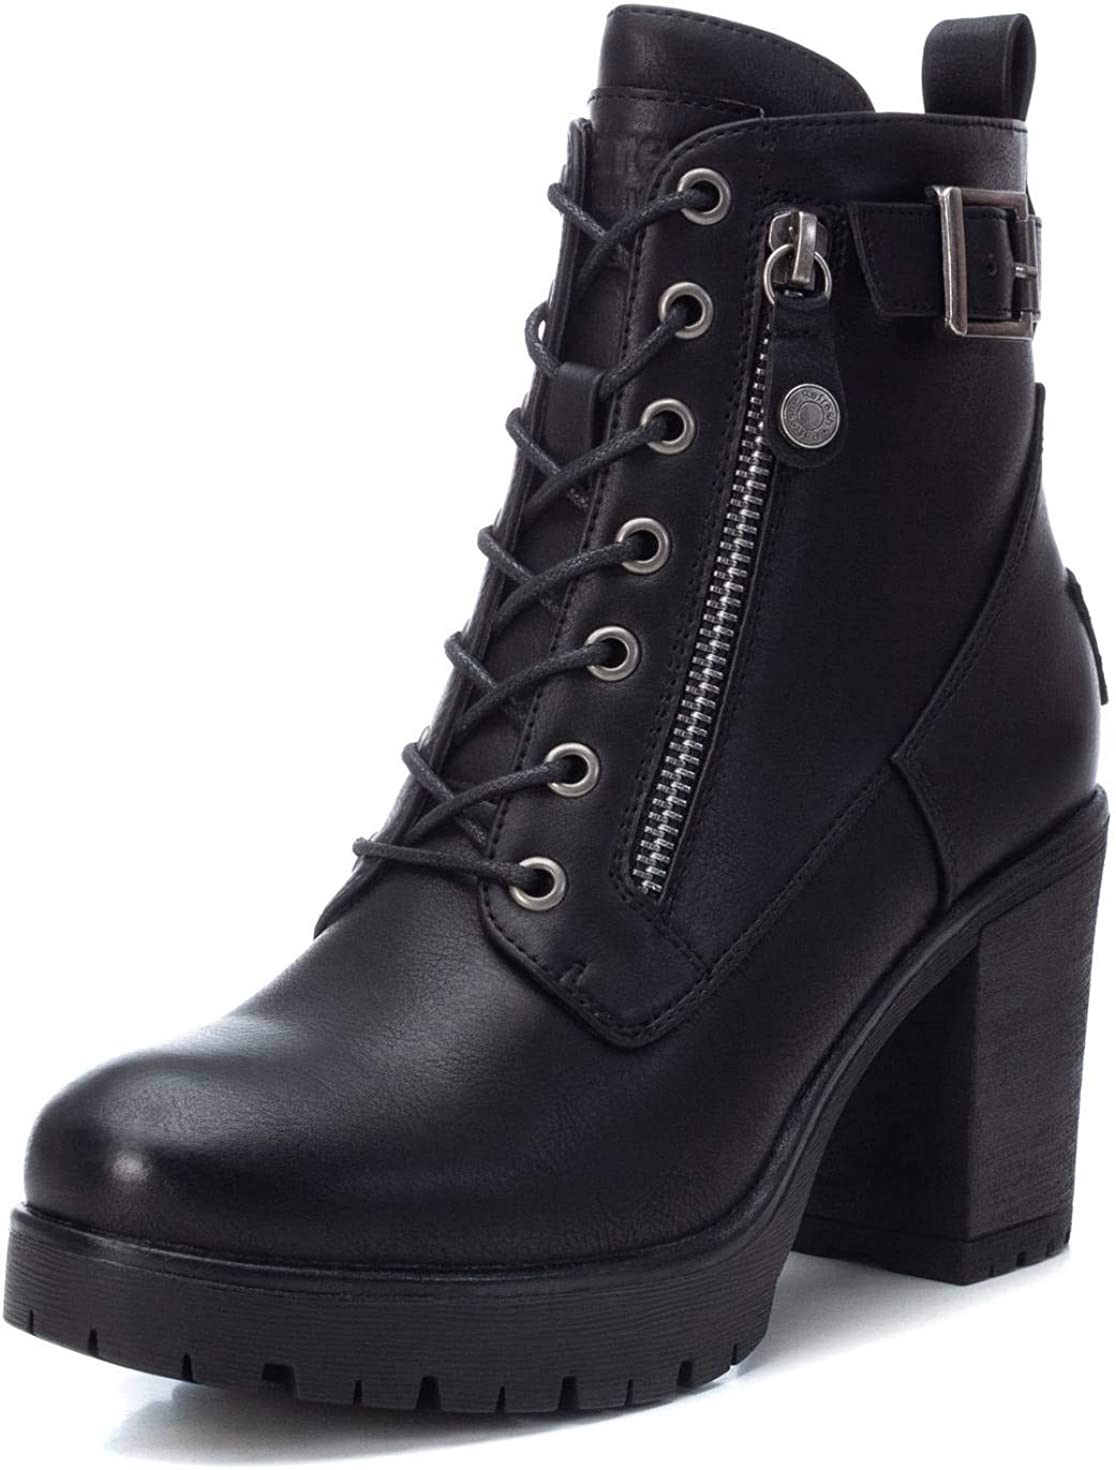 REFRESH Women's Large discharge sale 72387 Ankle Boot Nippon regular agency 8 Black